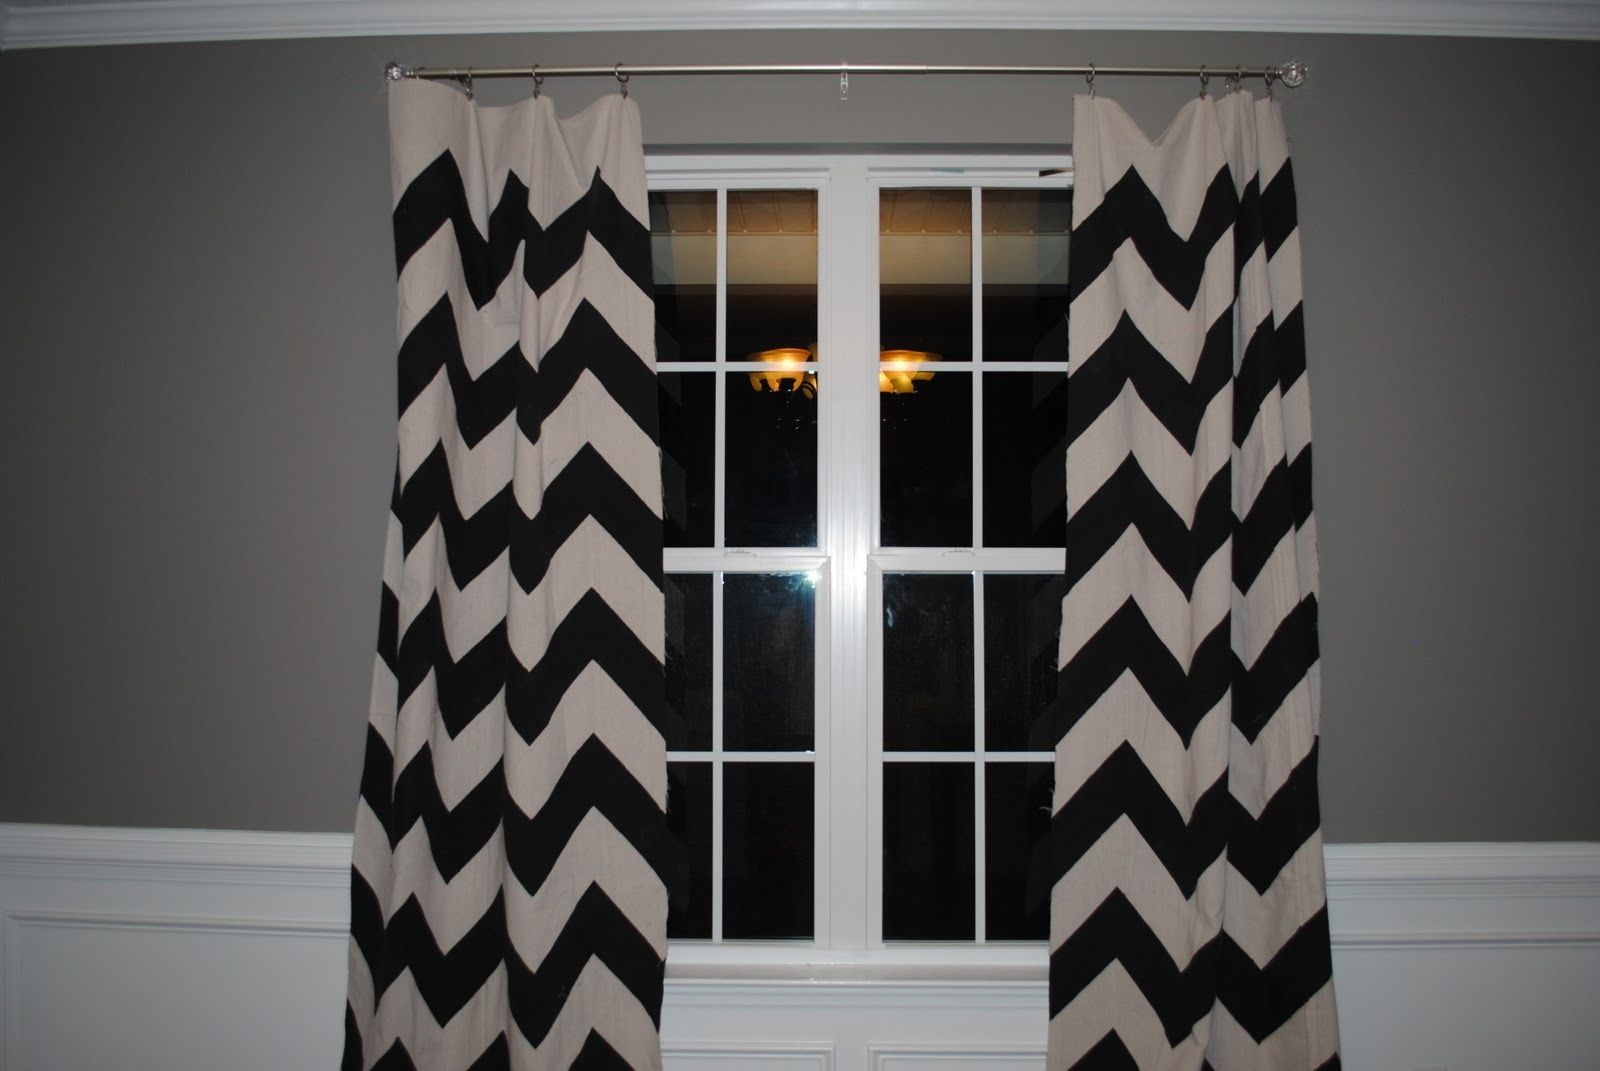 chevron curtains in black and white with window and grey wall